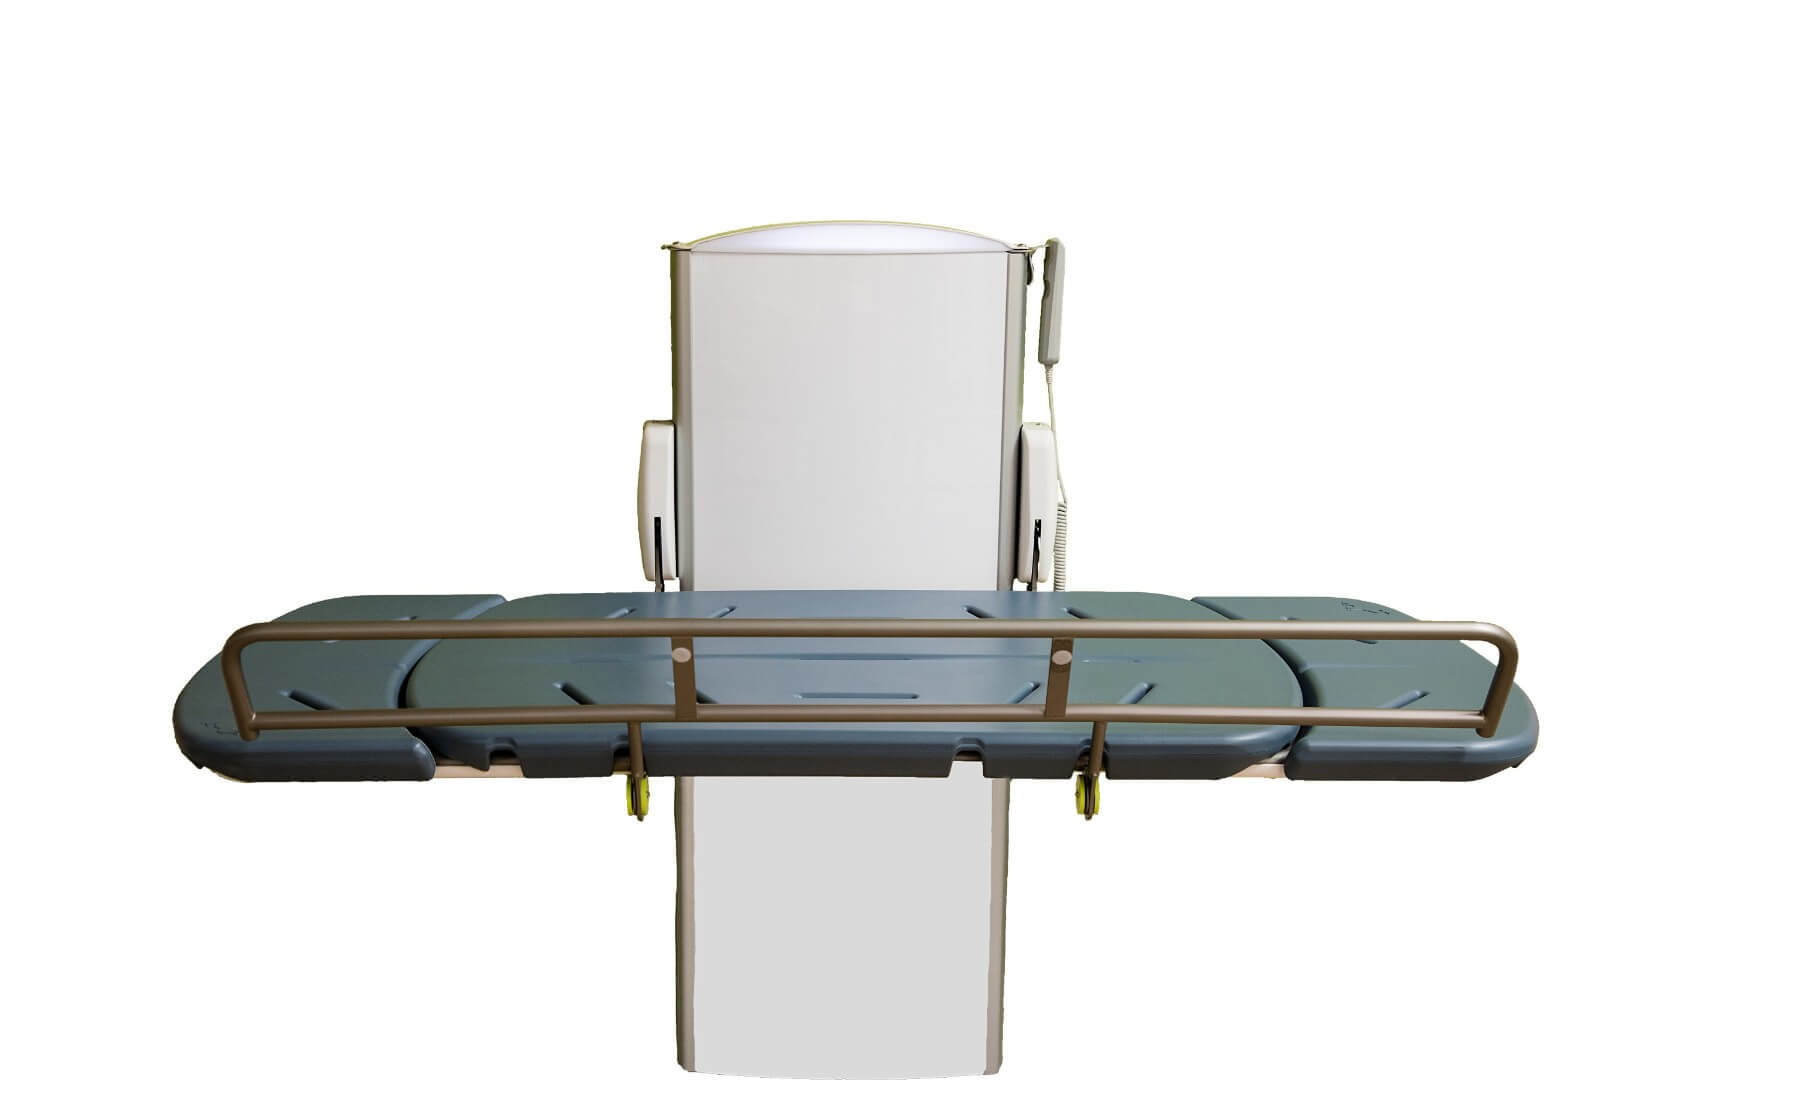 CTX Showering & Changing Table